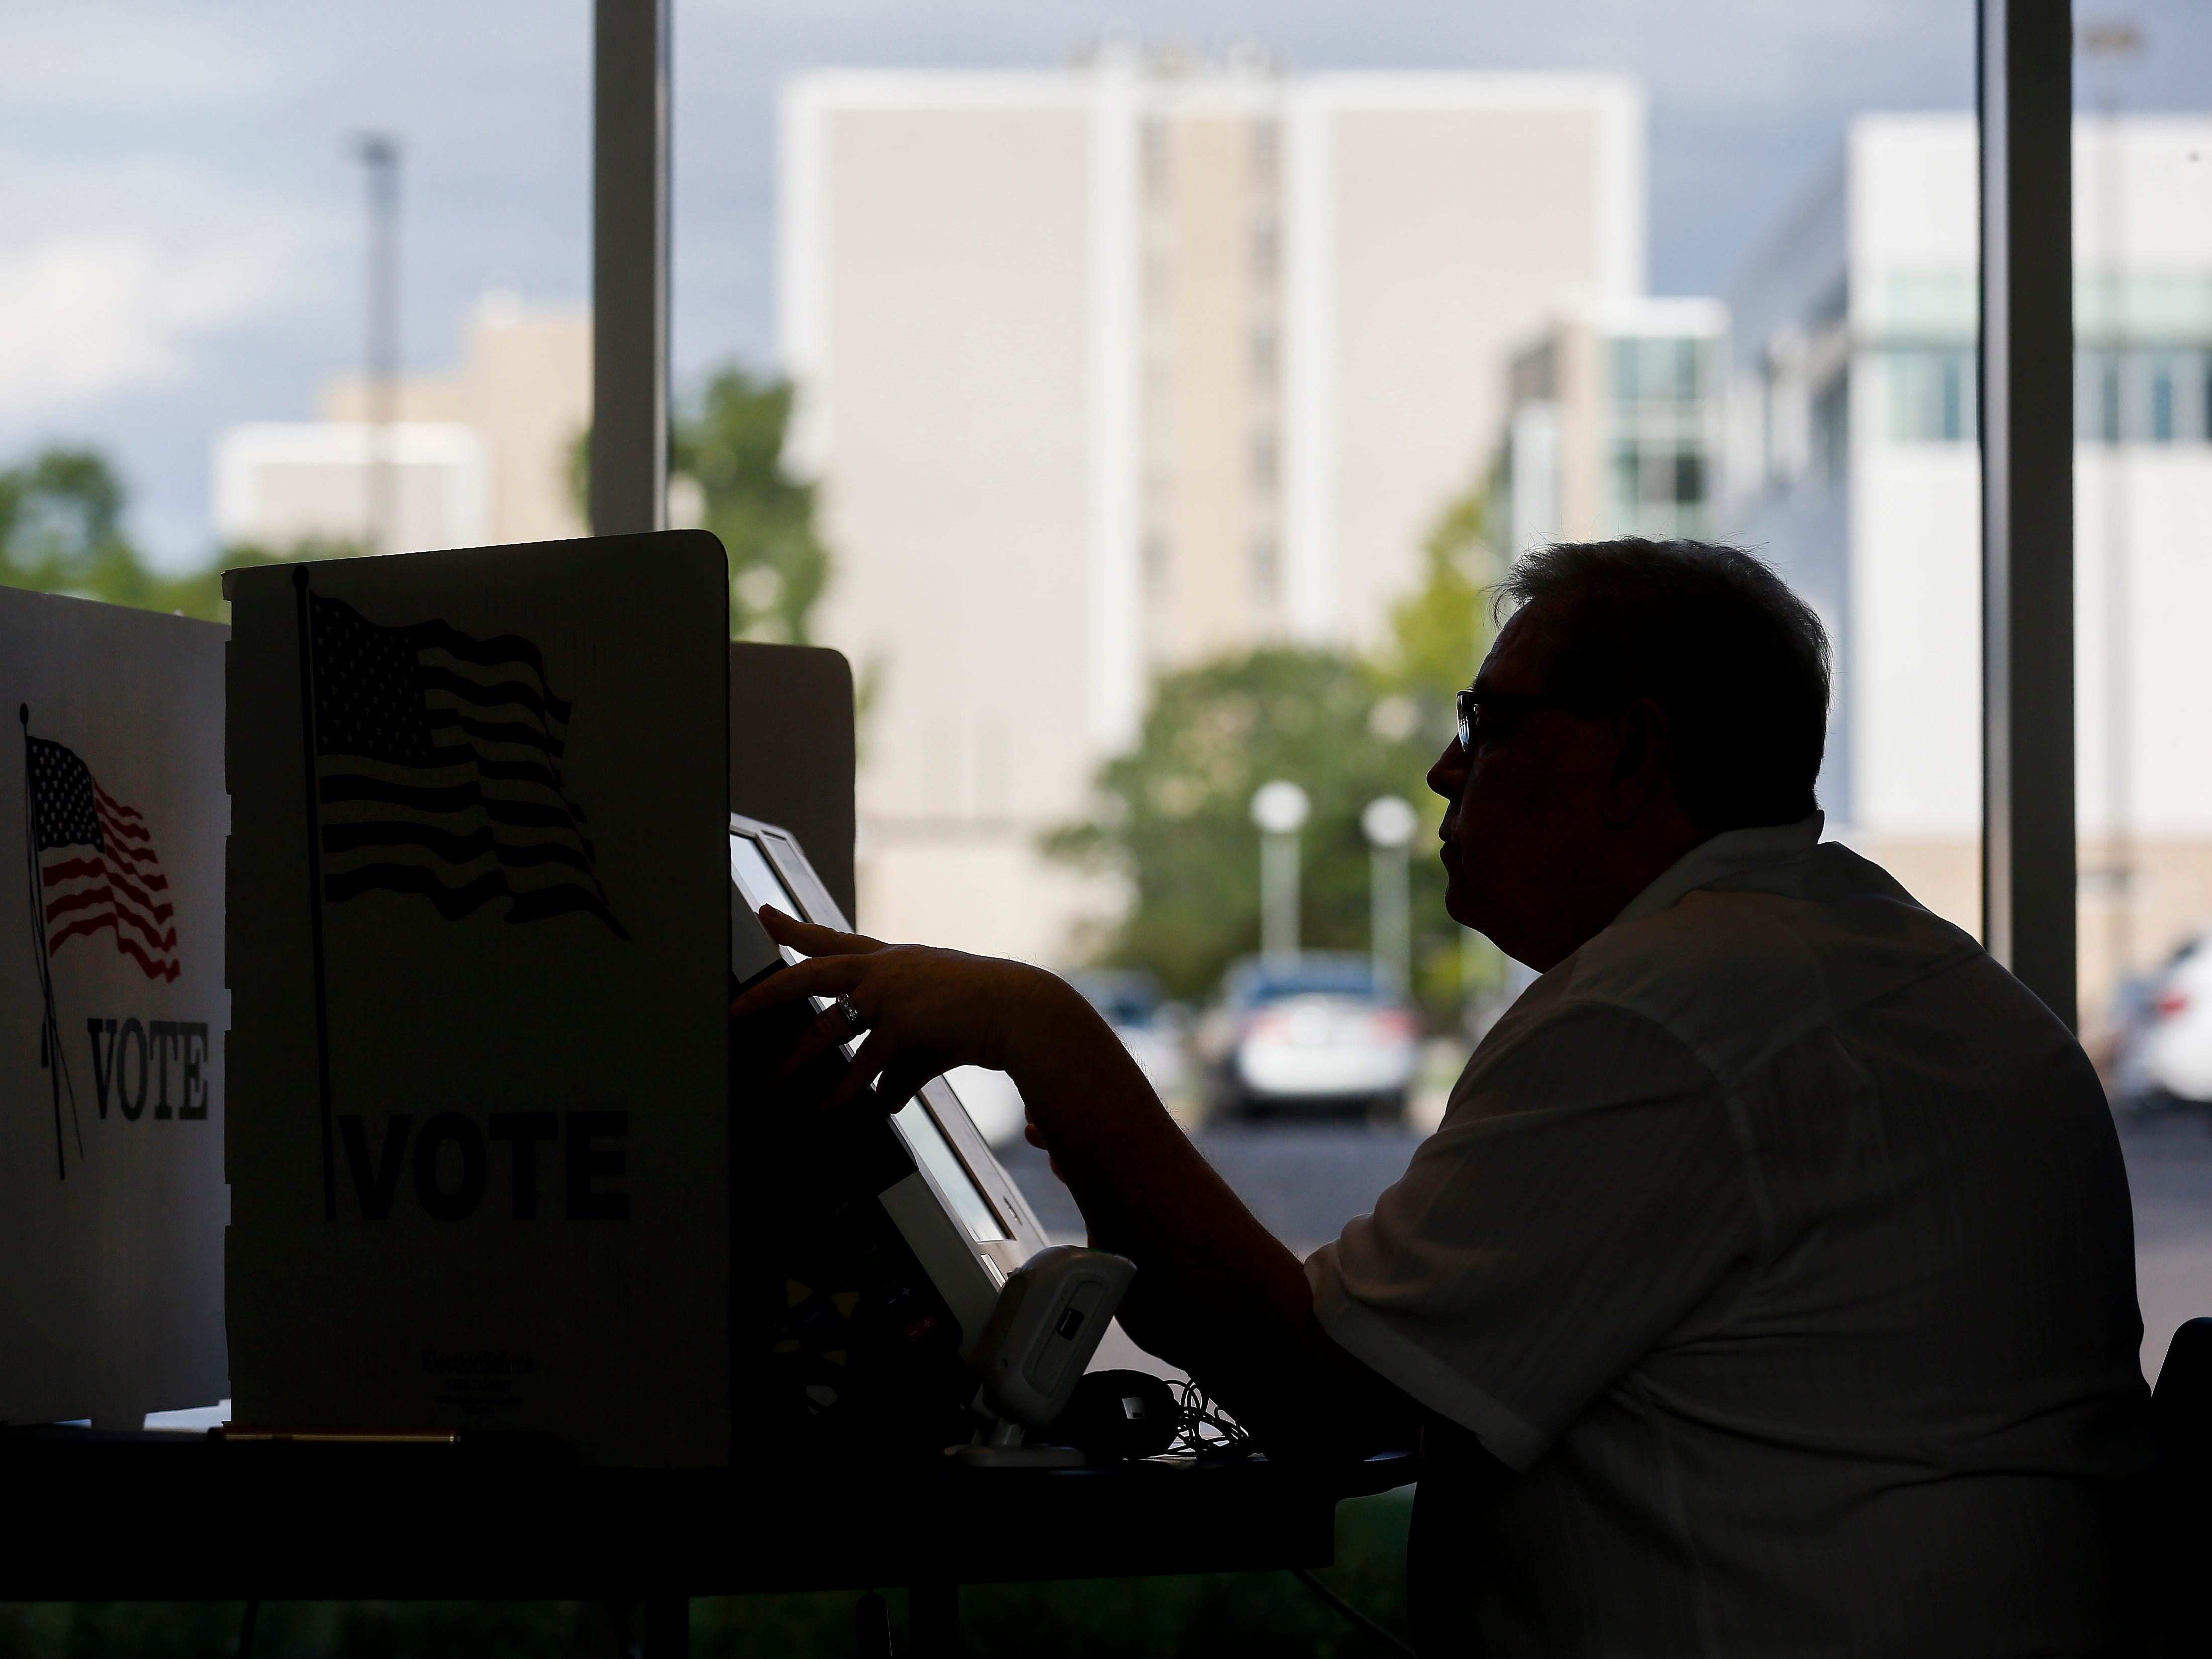 Gary Stewart uses the Express Vote machine to cast his ballot at the Davis-Harrington Welcome Center at Missouri State University on Tuesday, Aug. 7, 2018.